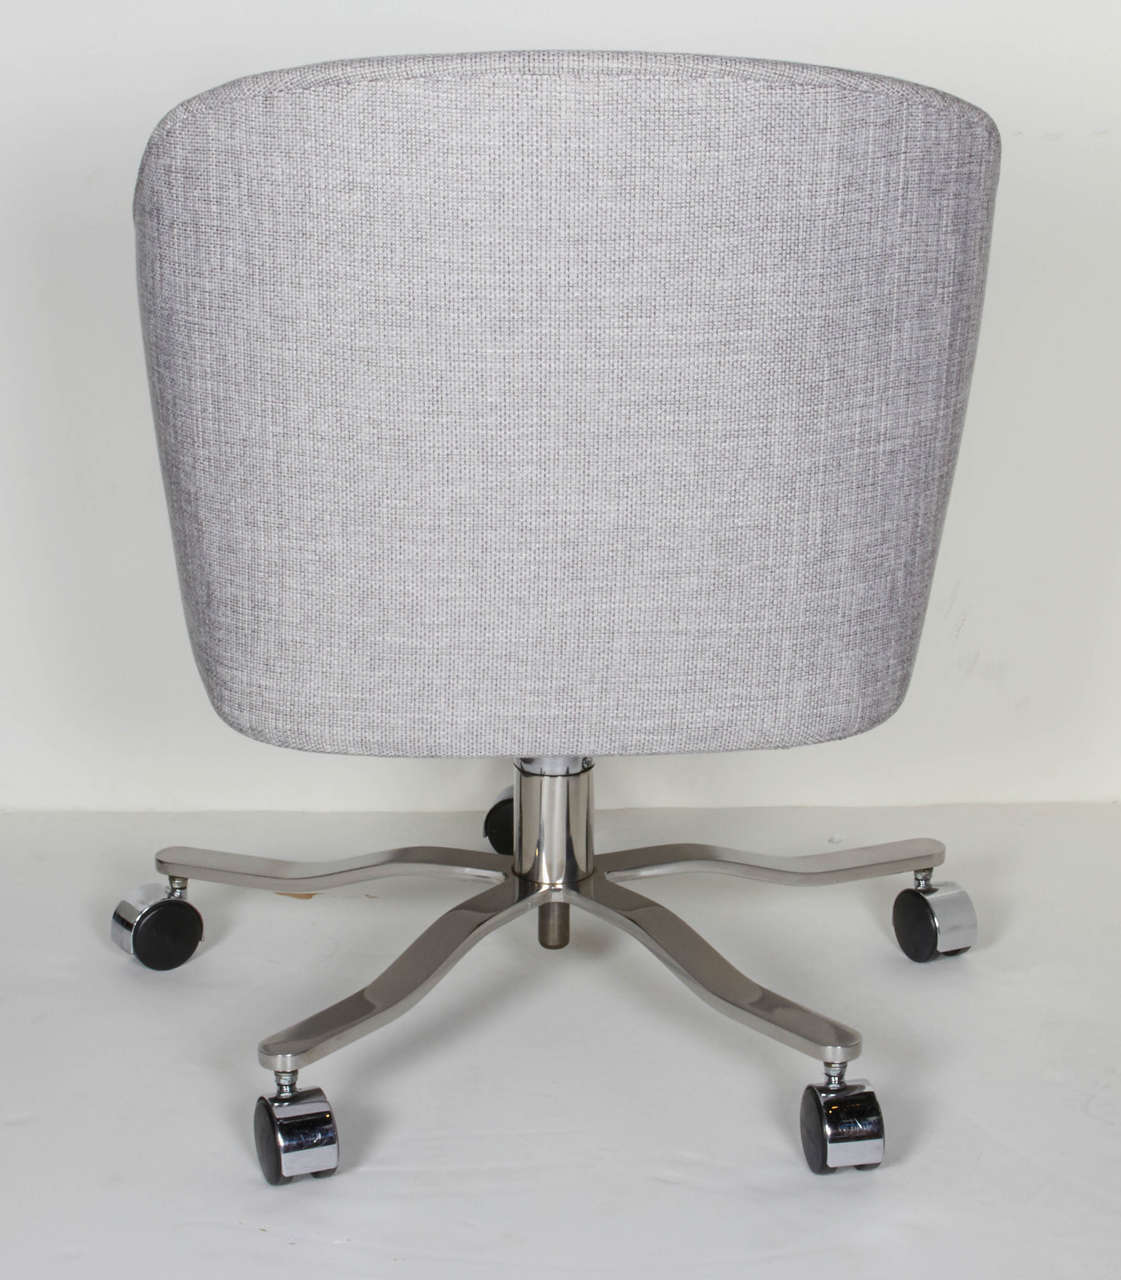 Mid-Century Modern Swivel Desk Chair Designed by Ward Bennett 7